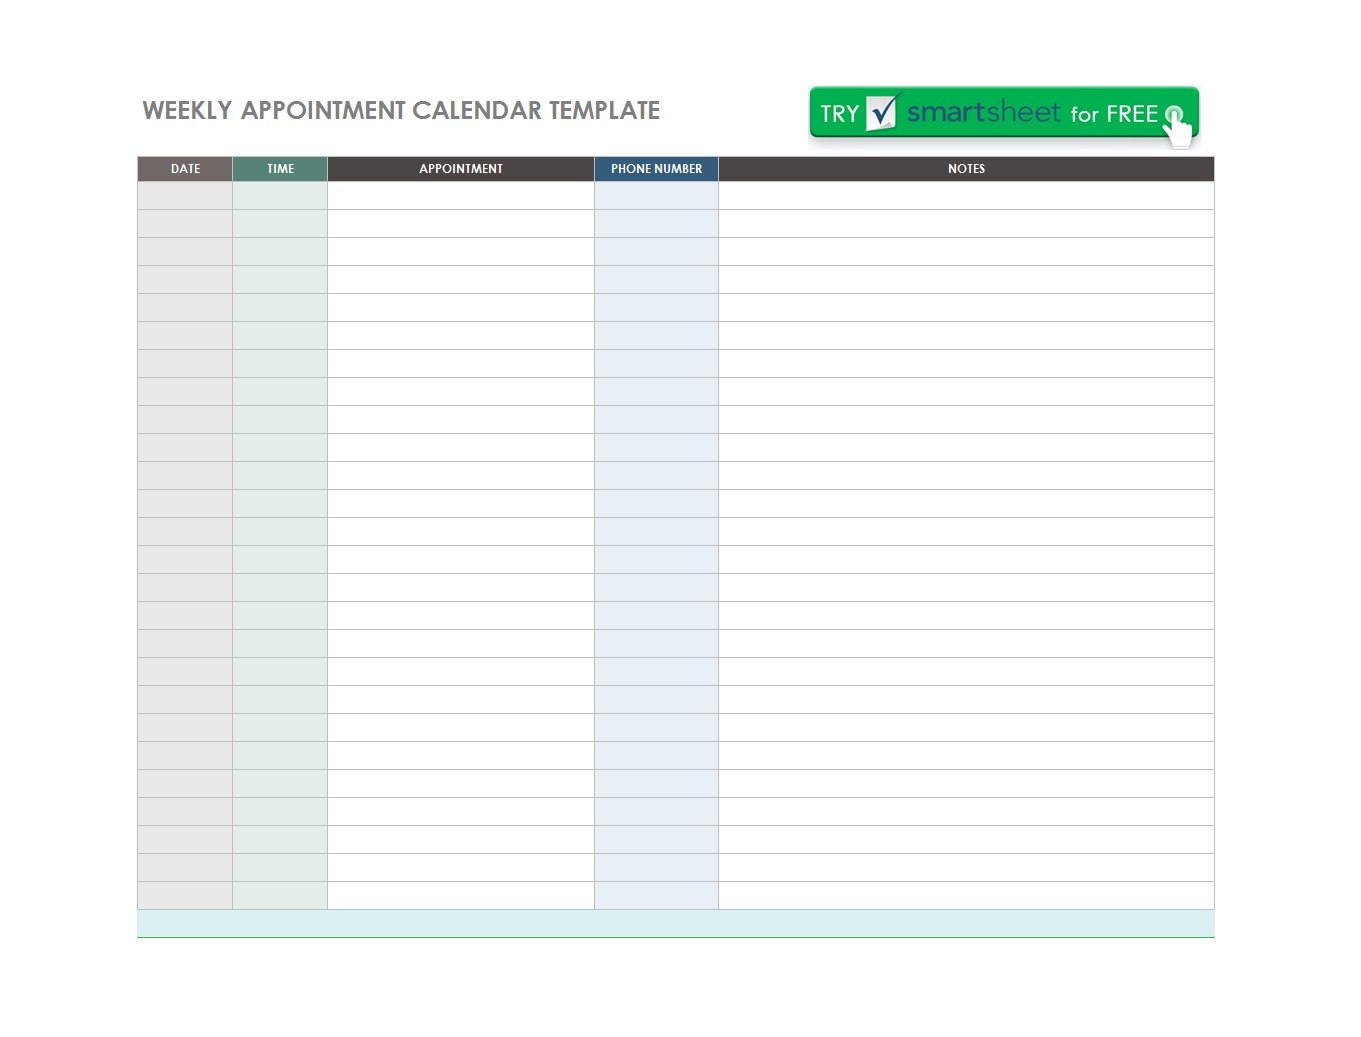 Printable Appointment Schedule Templates  Appointment Calendars In Medical Appointment Card Template Free